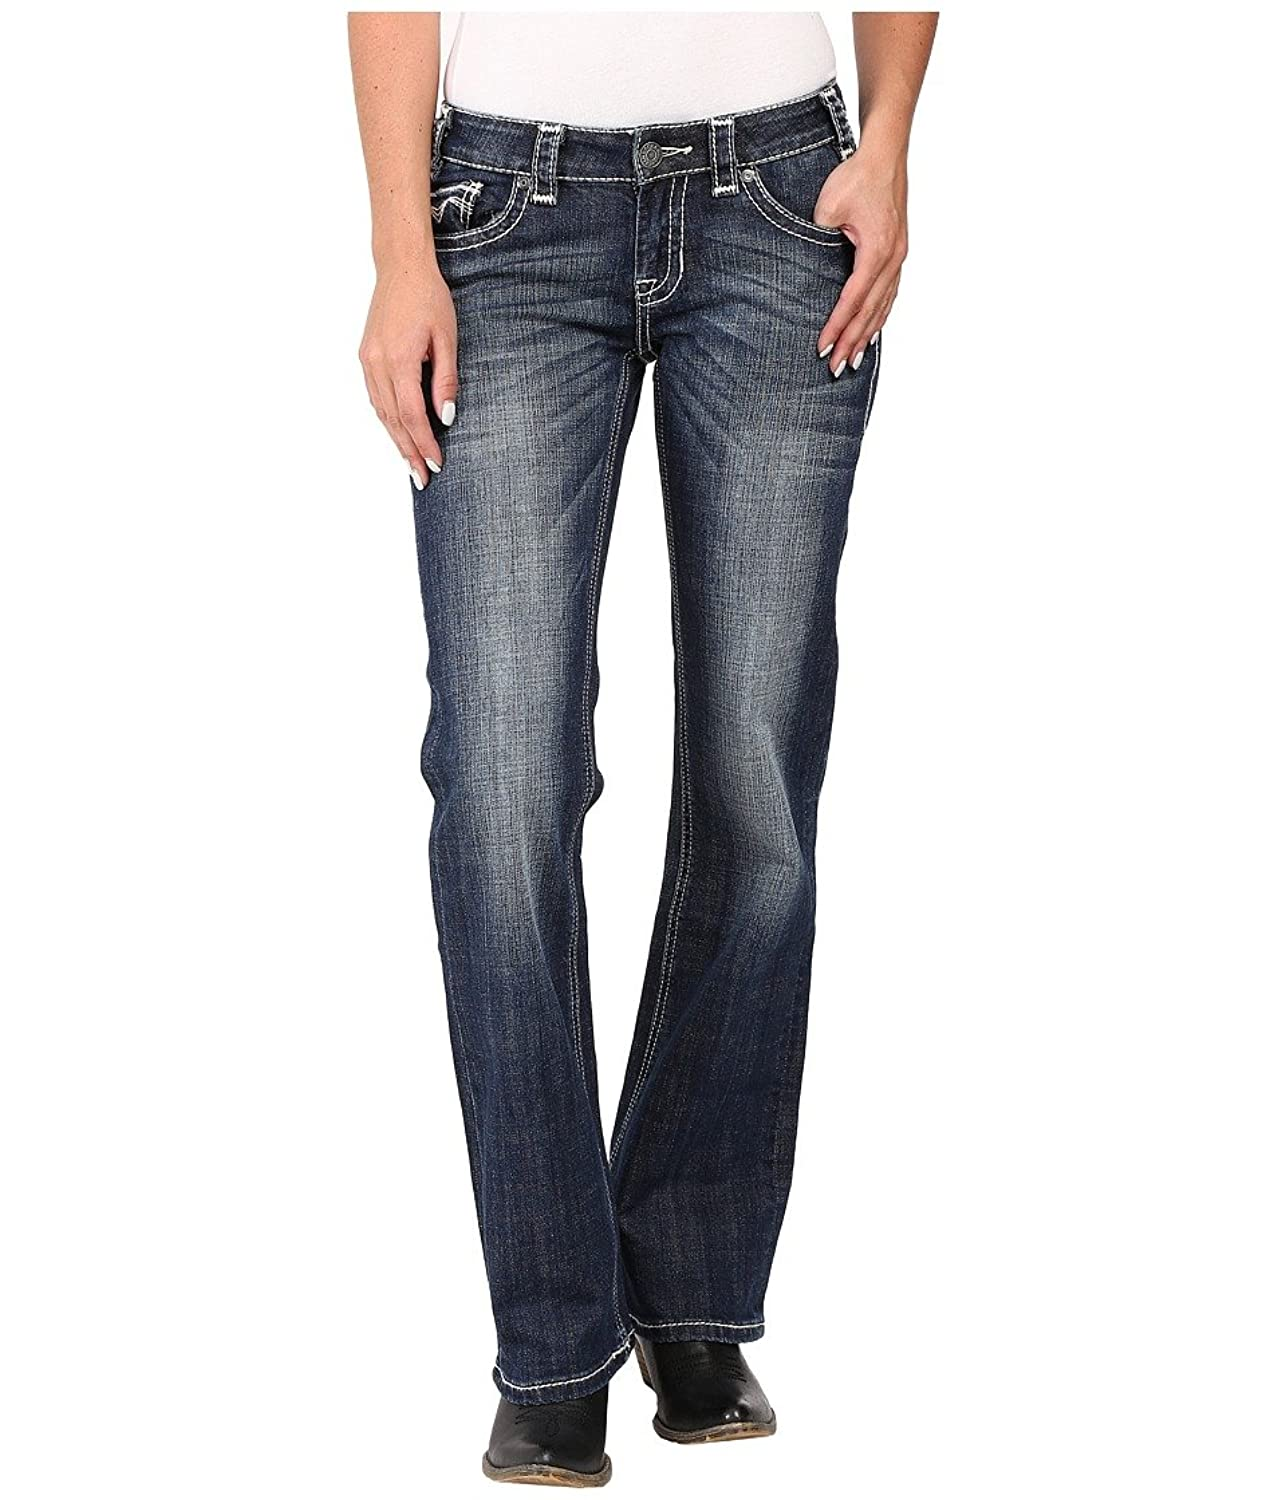 Rock and Roll Cowgirl Women's Riding Bootcut in Dark Vintage W7-8484 Dark Vintage Jeans 33 X 32